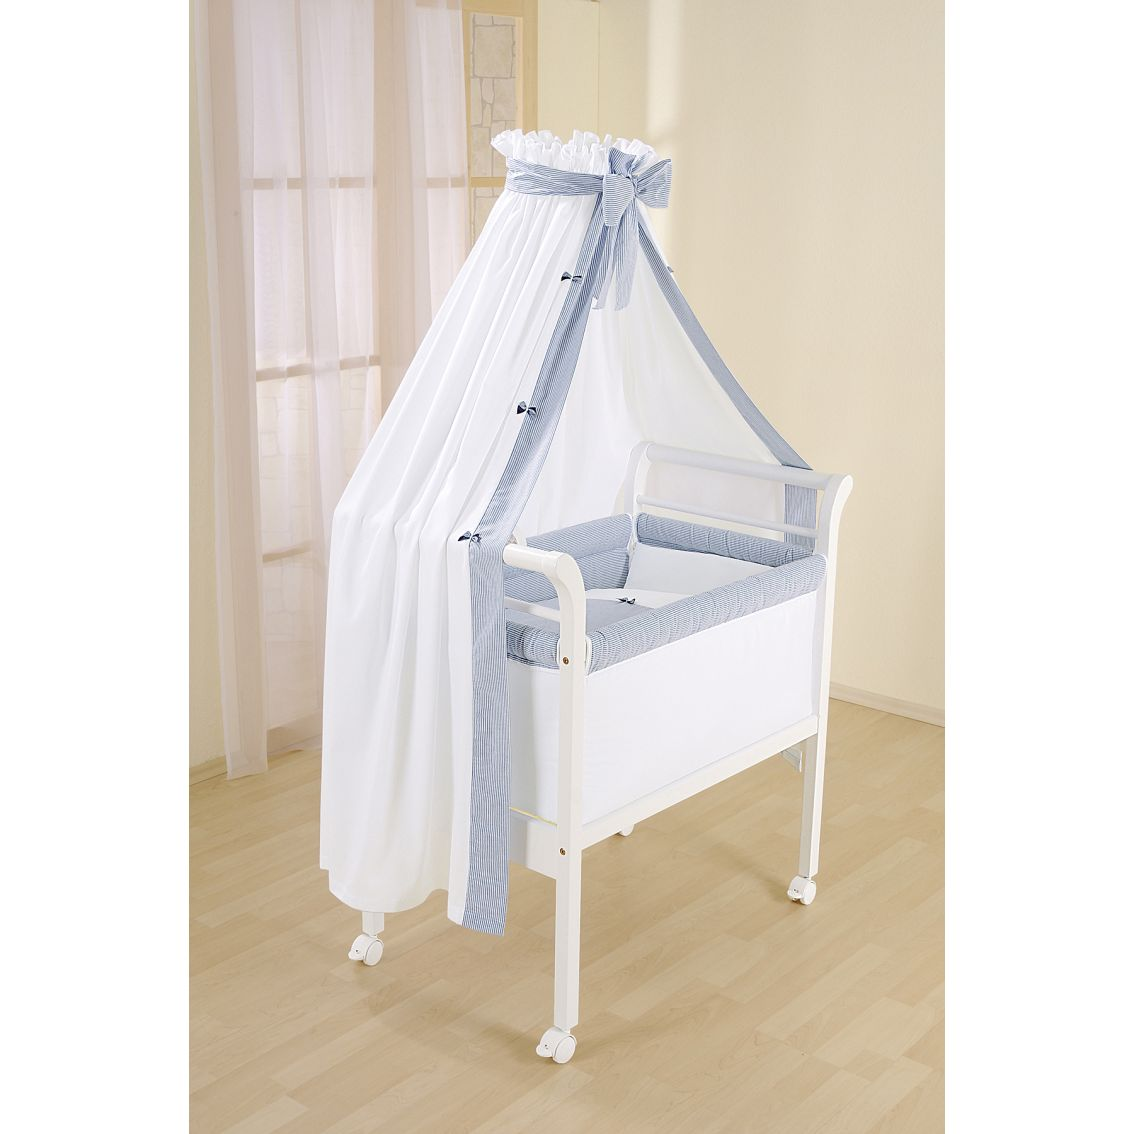 Leipold crib for sale - Leipold Classic Baby Crib